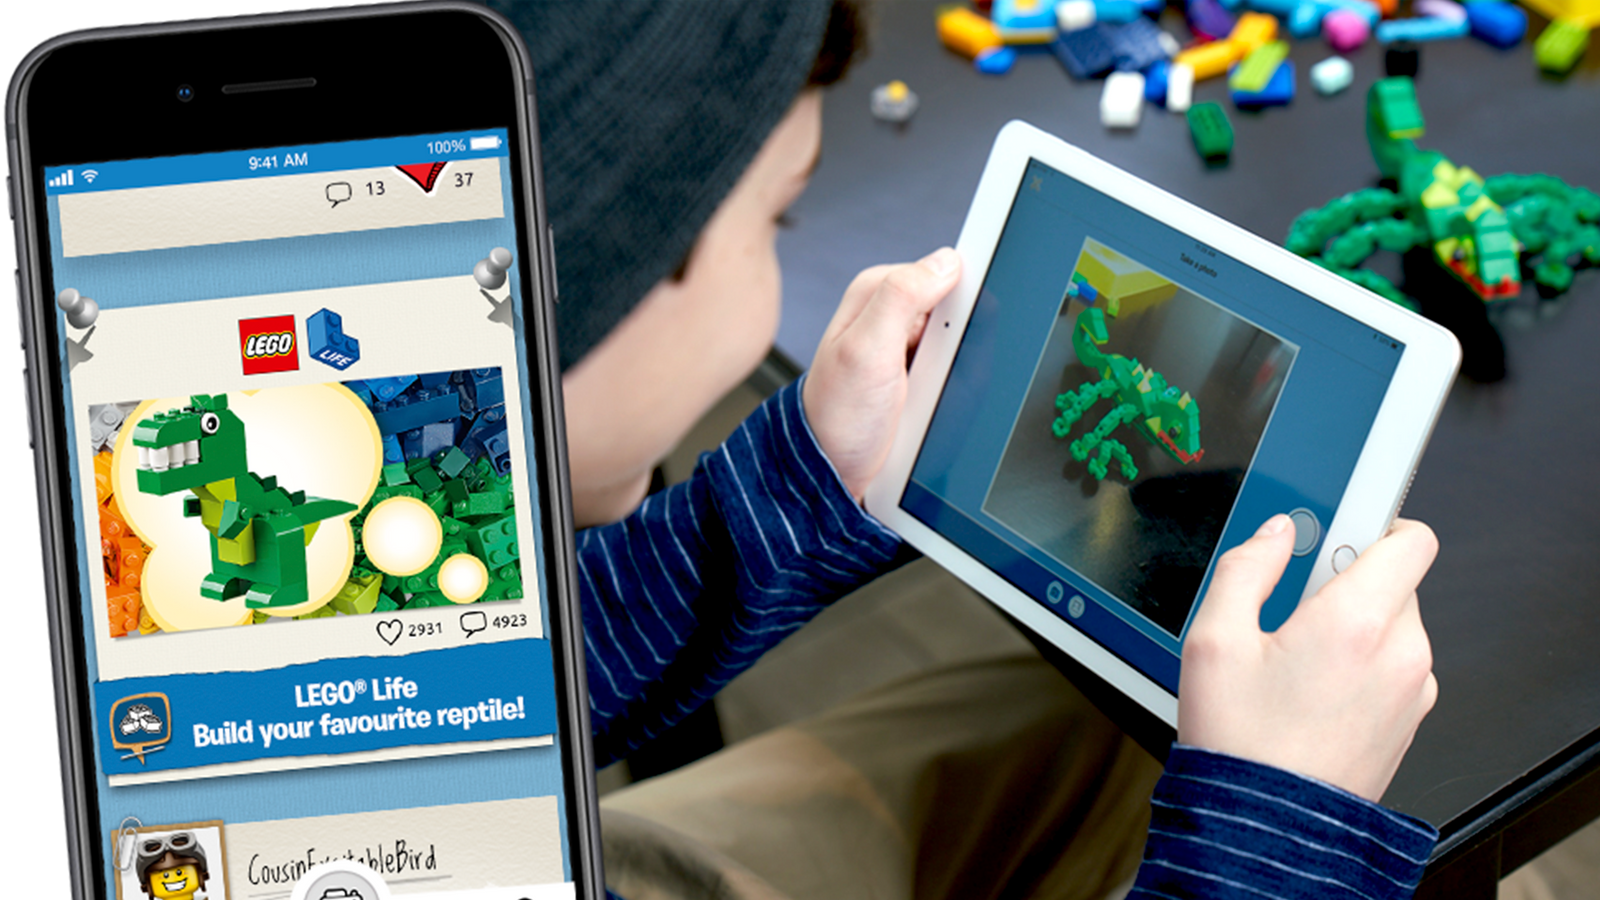 lego life app features